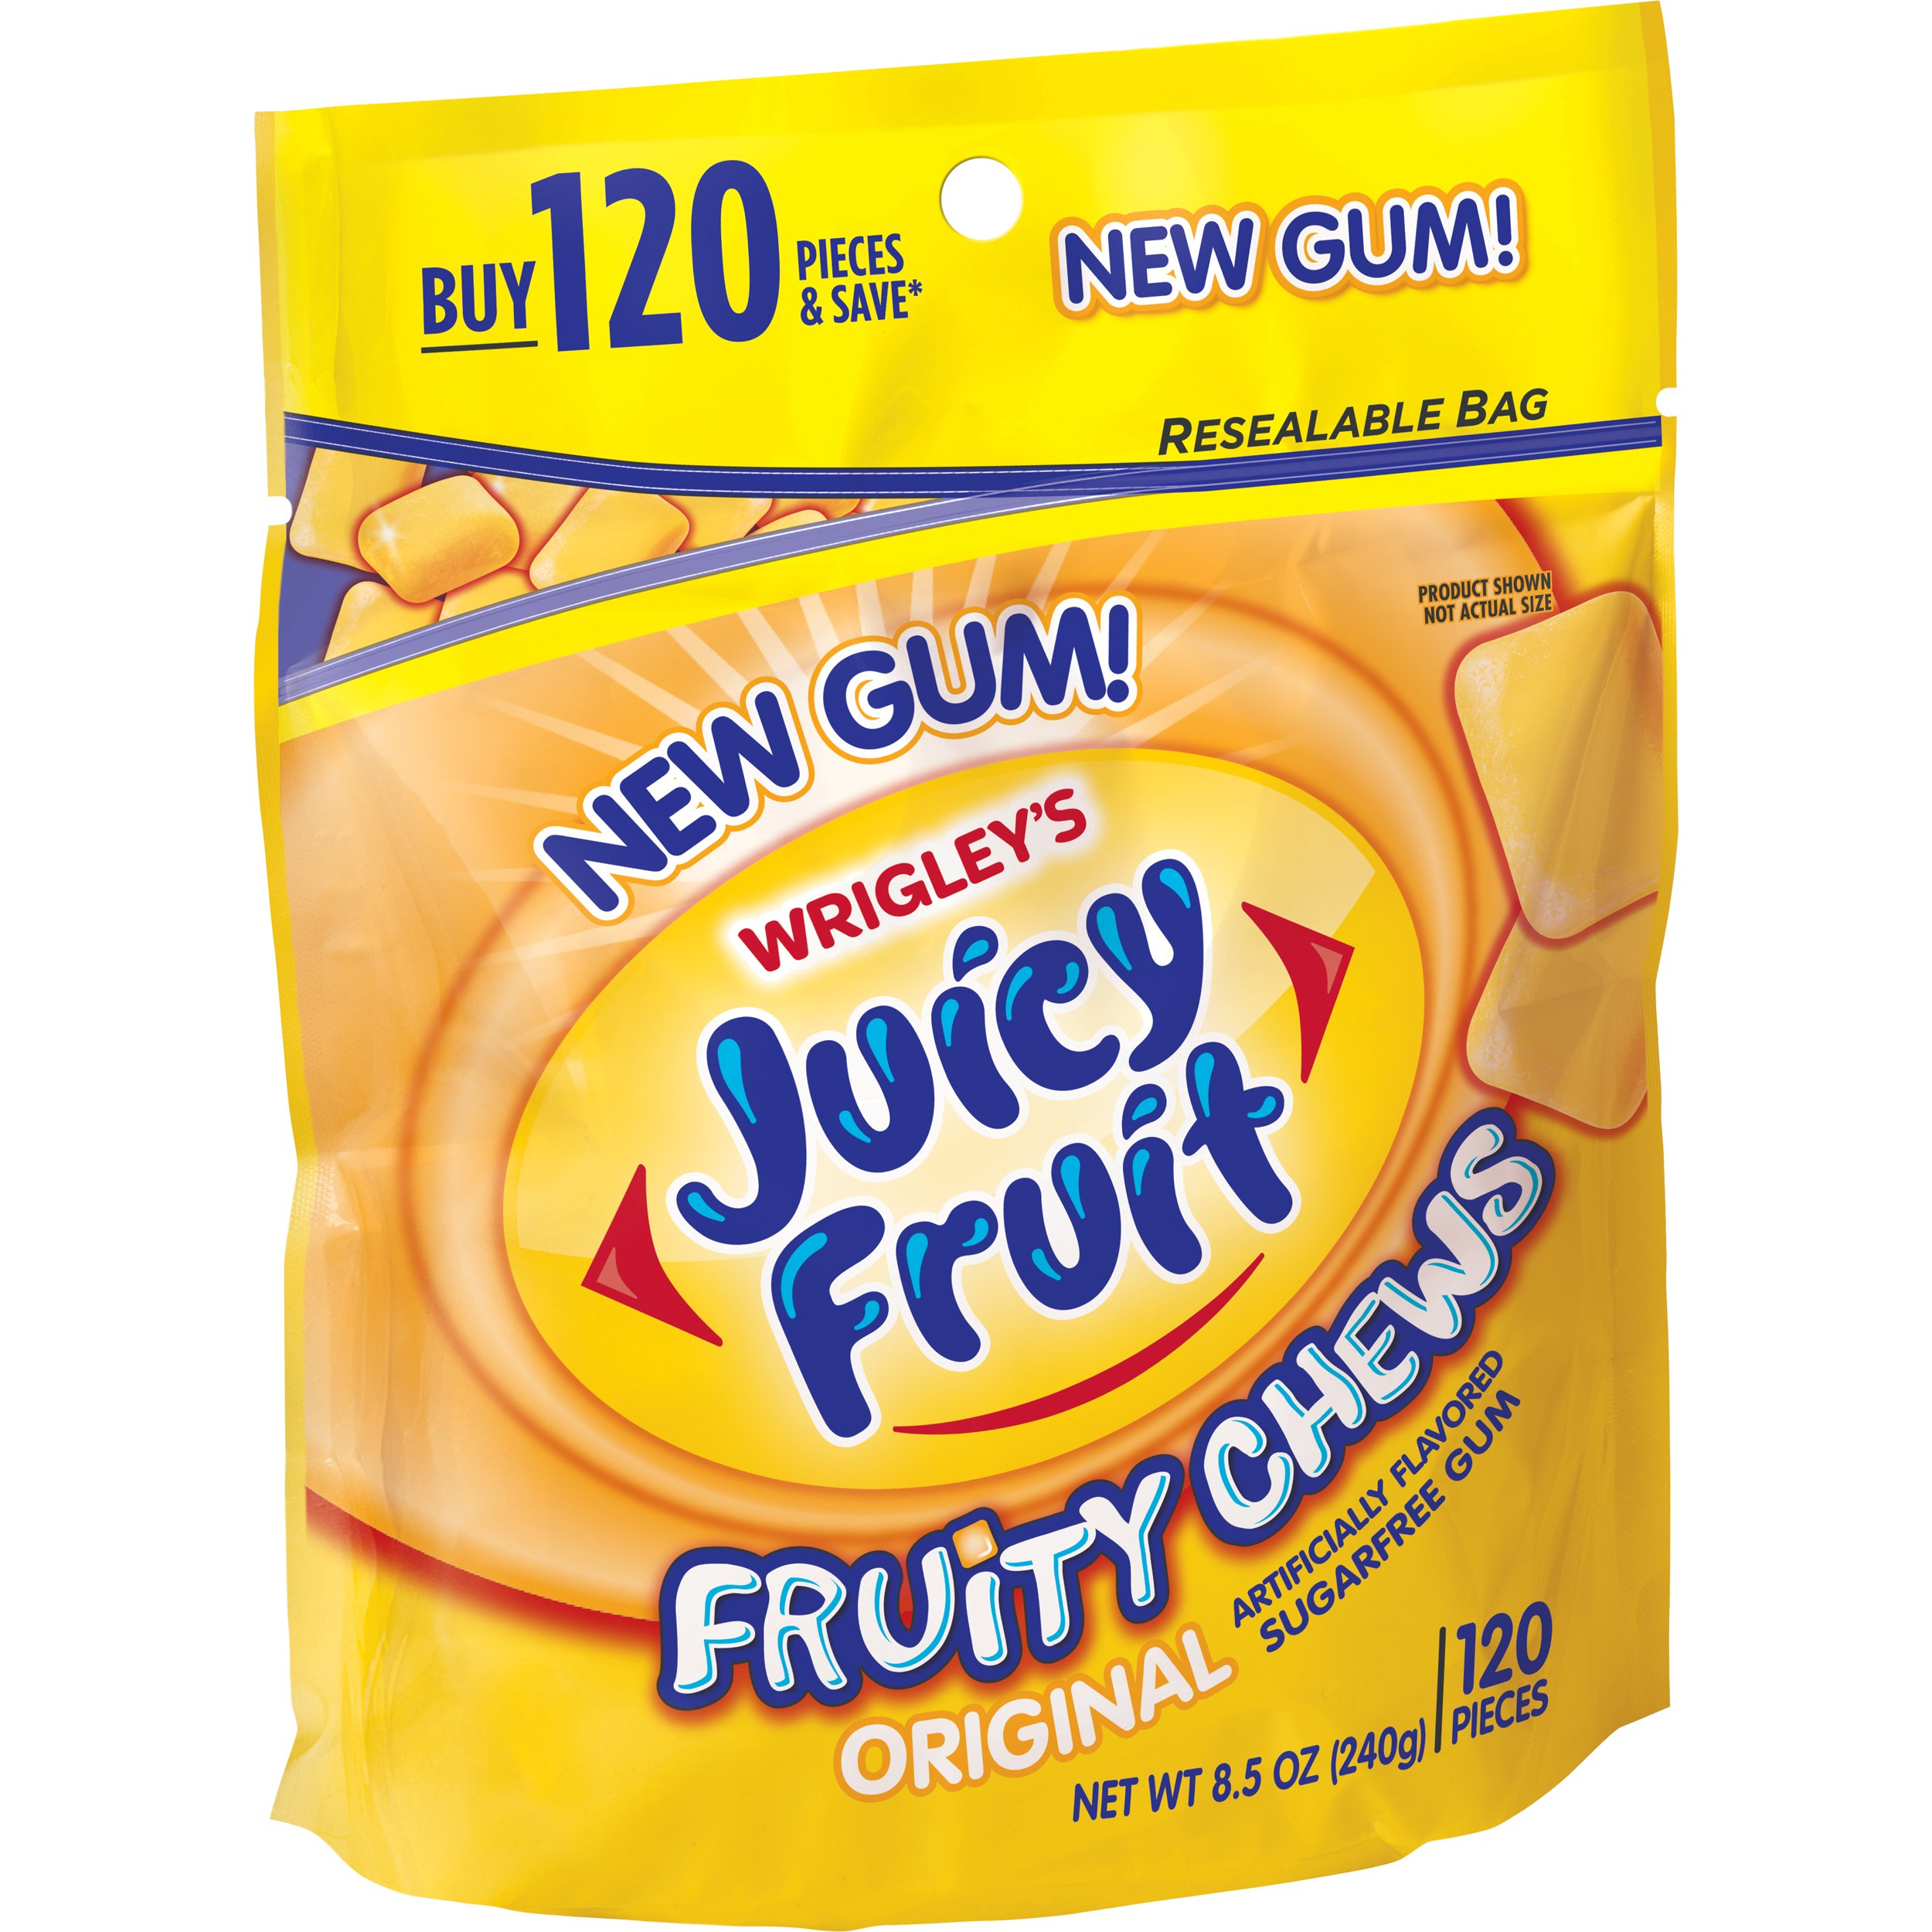 Juicy Fruit Fruity Chews Original Sugarfree Gum, 120 piece bag